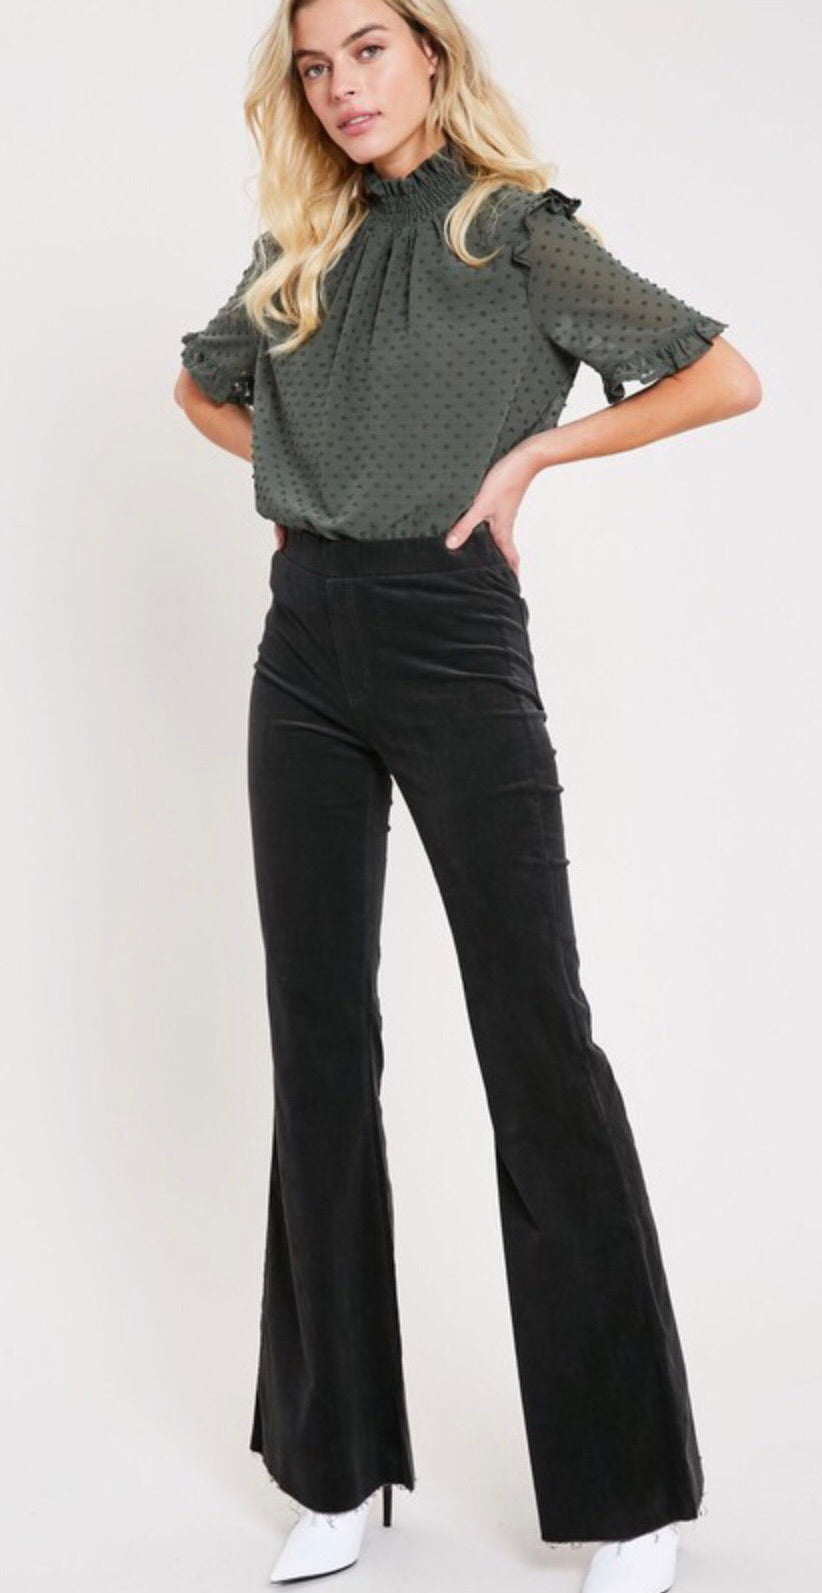 Charcoal Corduroy Stretchy Flares with Raw Edge